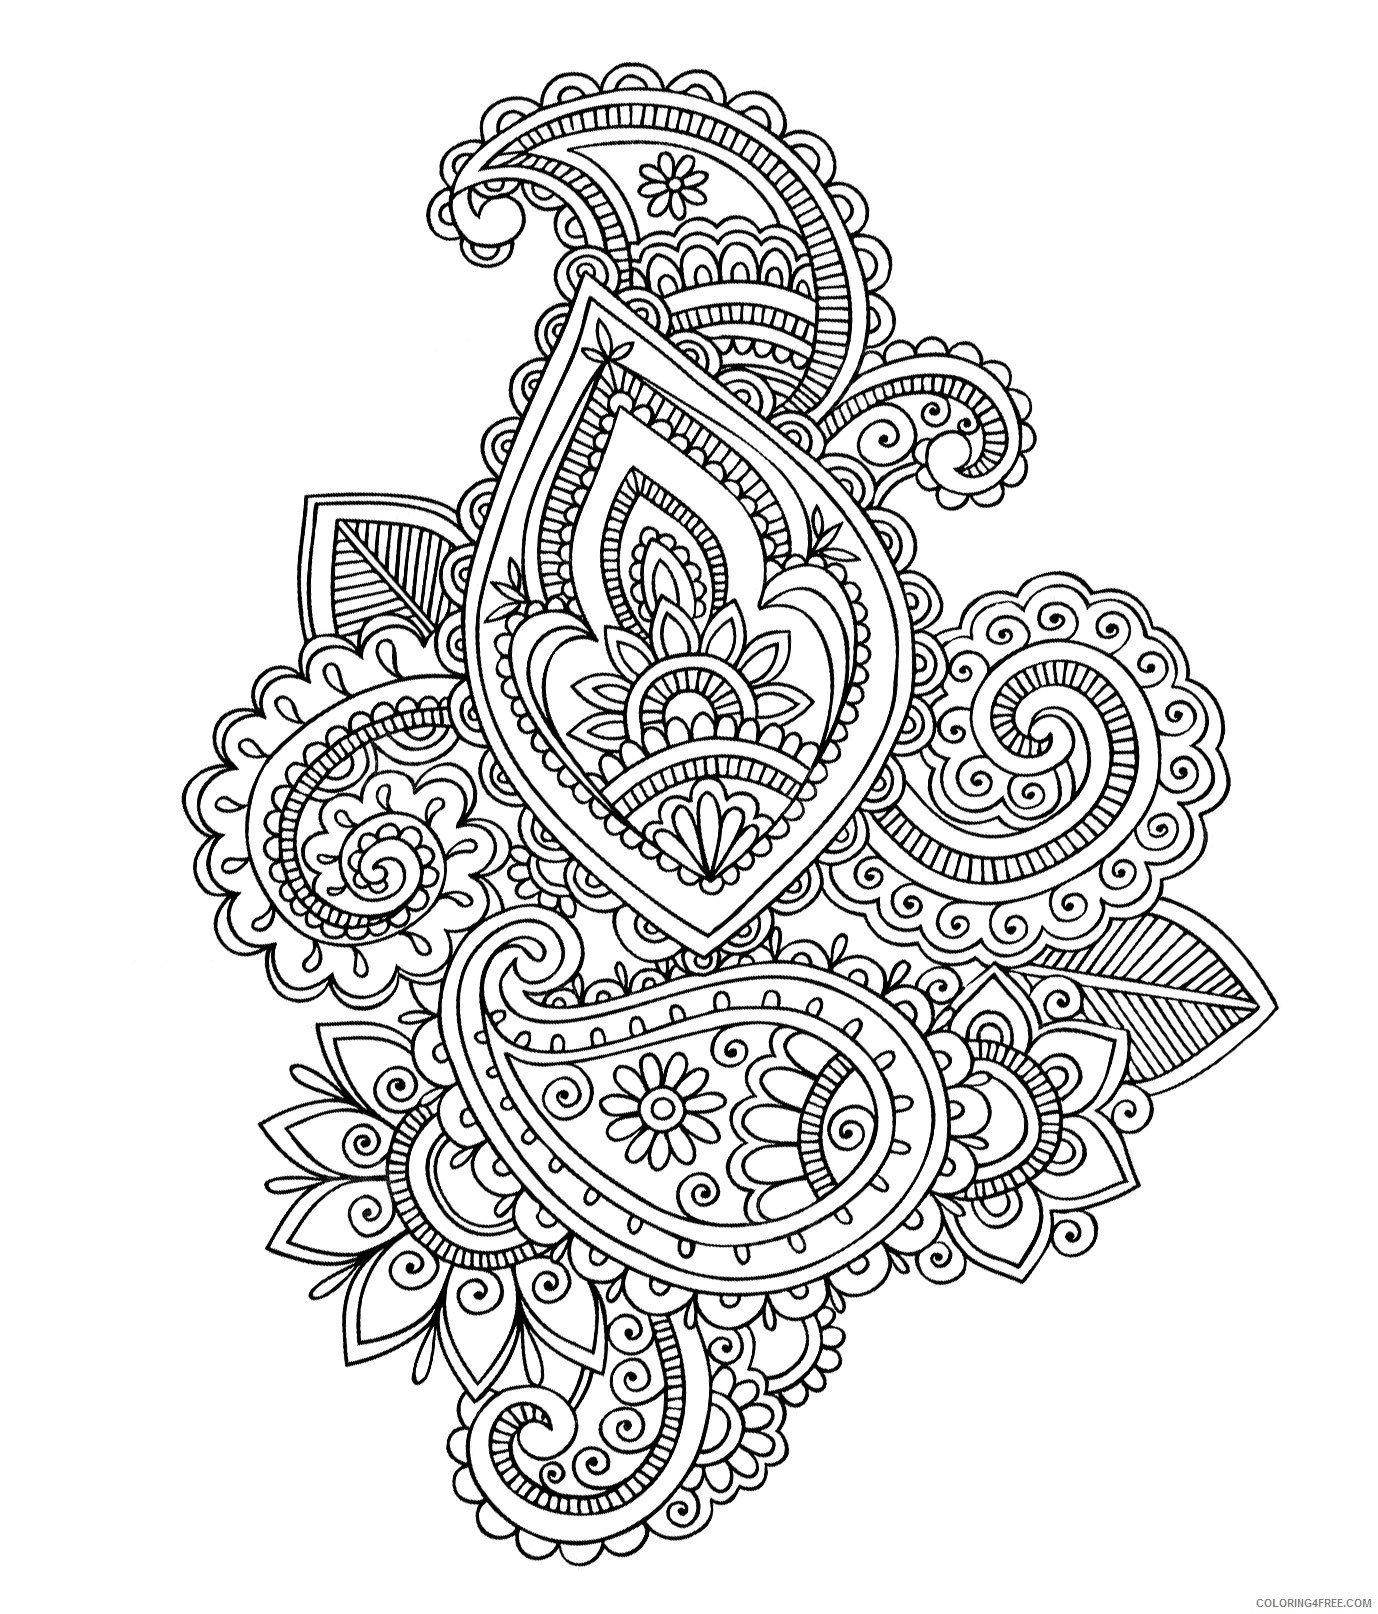 adult coloring pages free Coloring4free